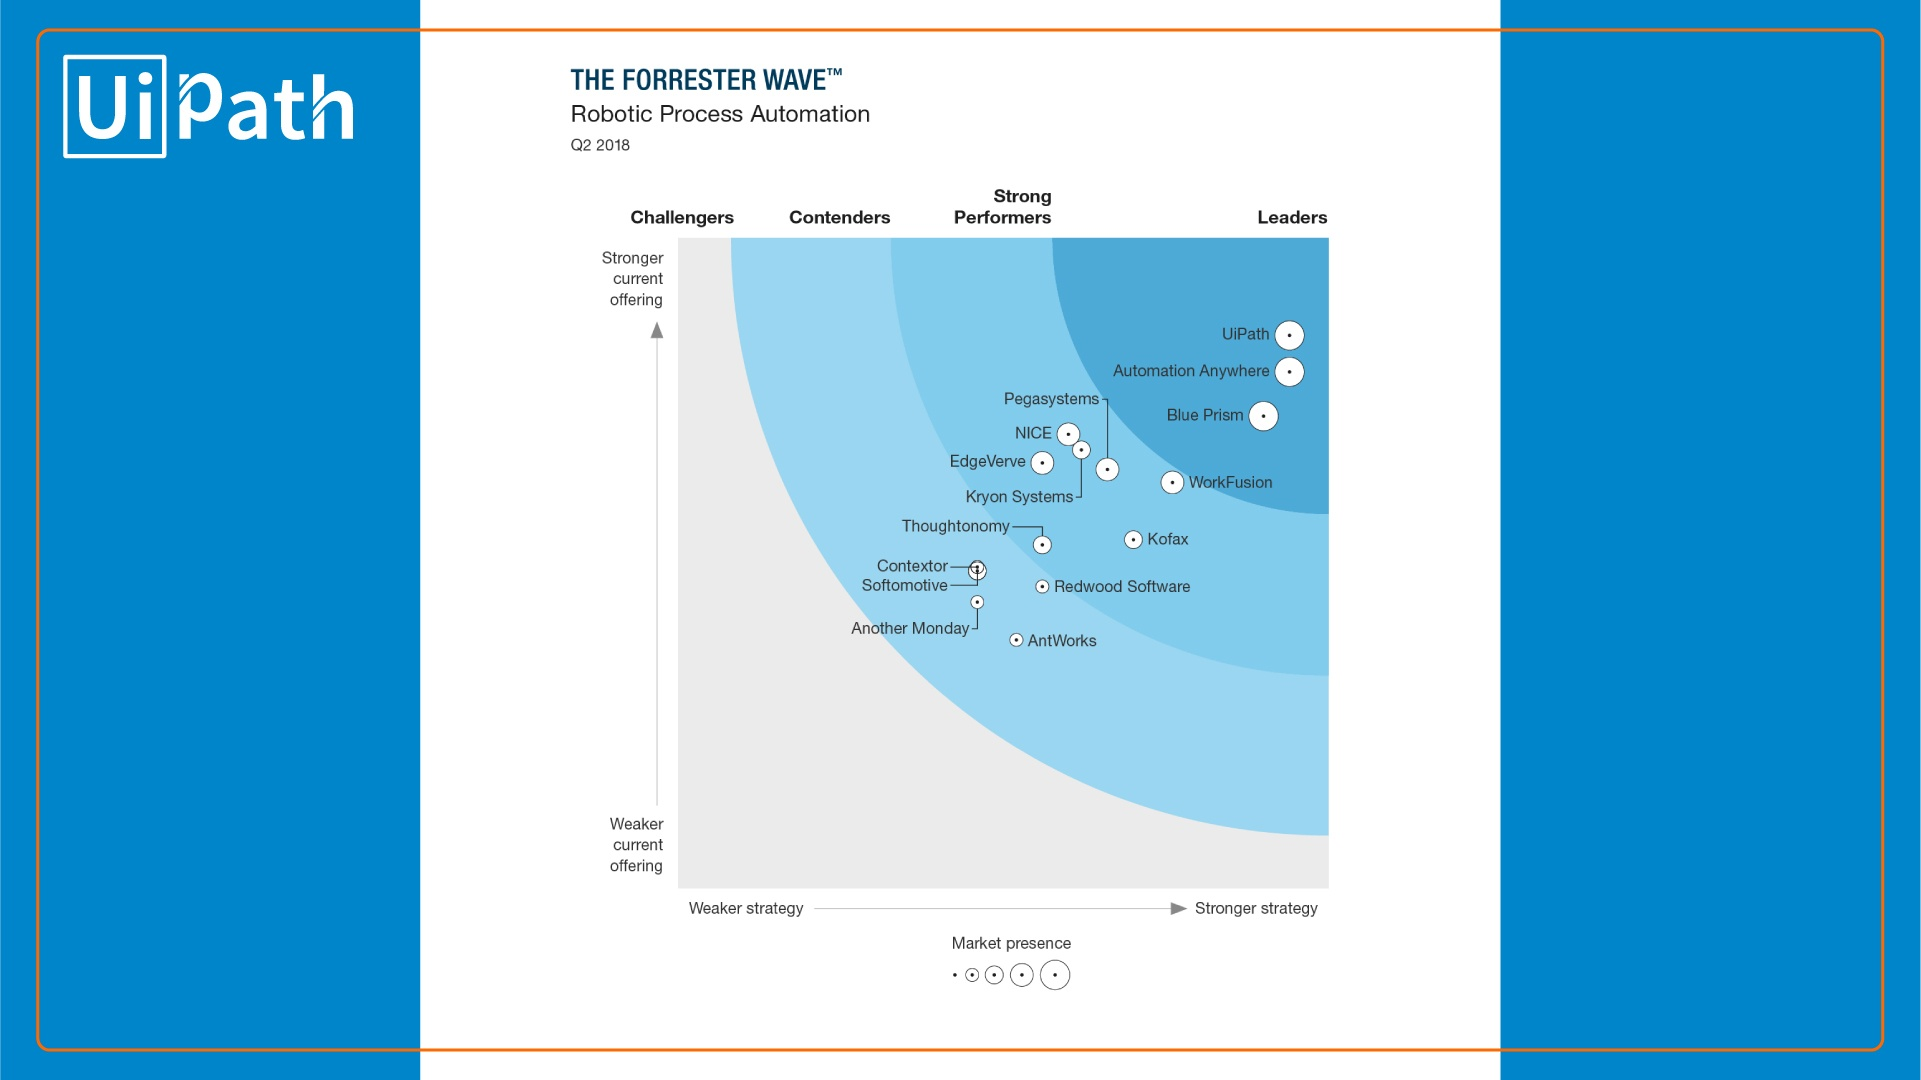 UiPath-Forrester-Wave-Report-2018